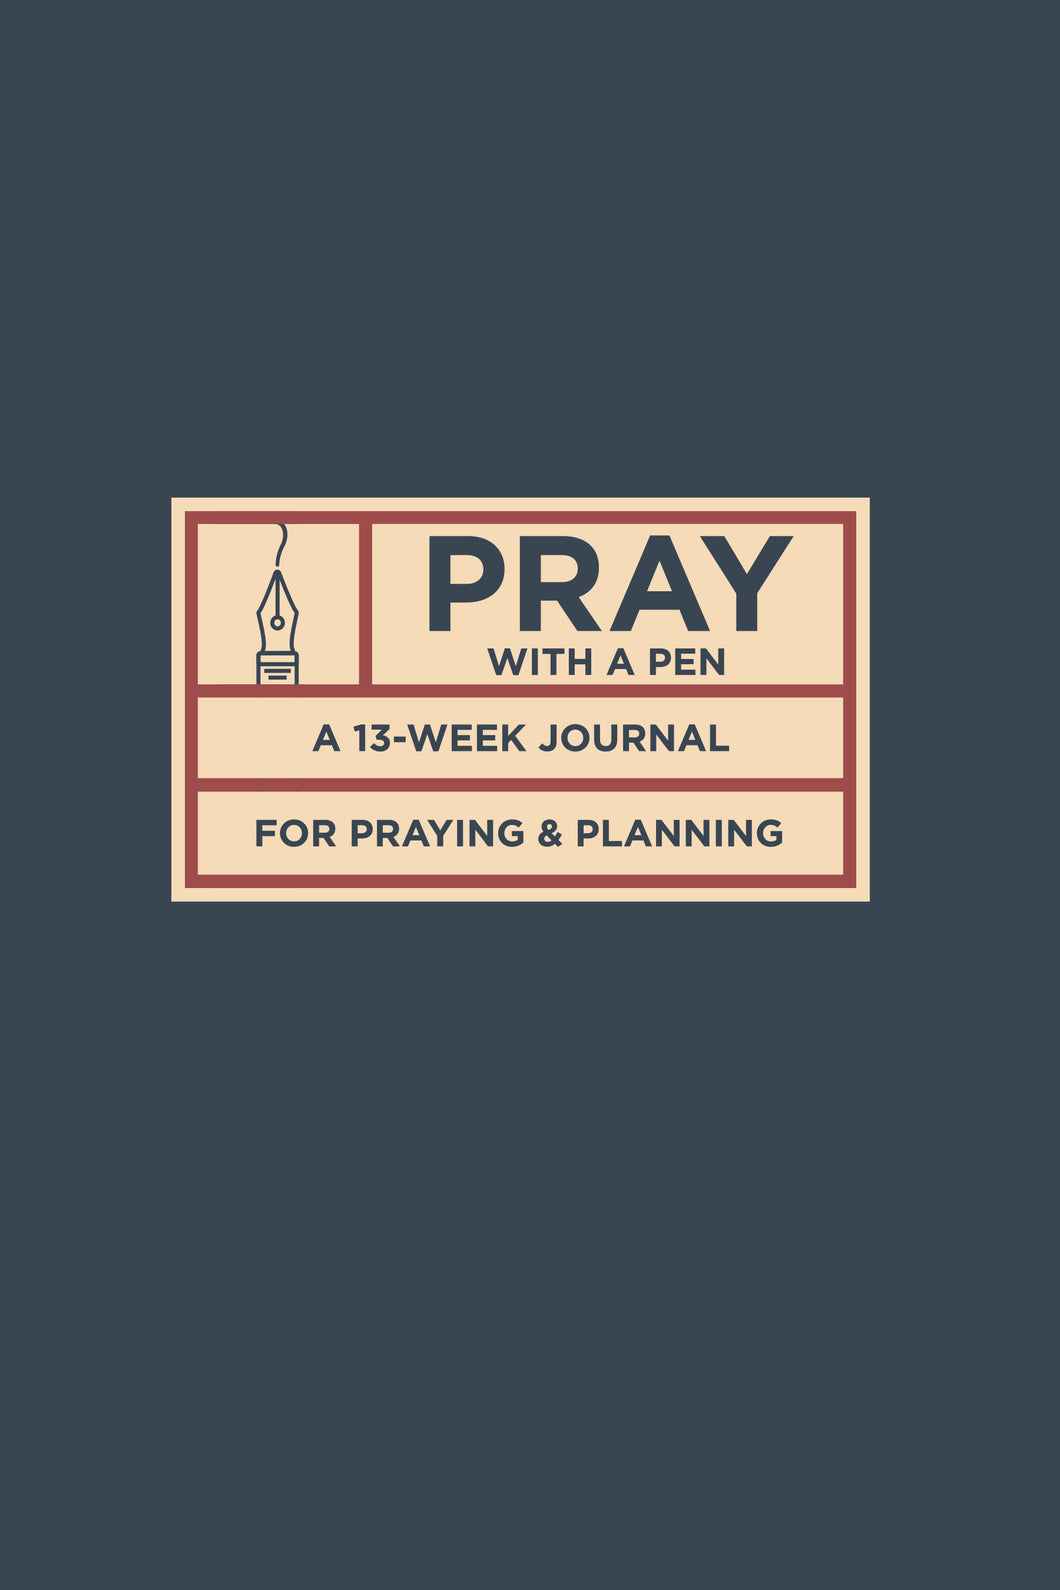 Pray with a Pen: A 13-Week Journal for Praying and Planning